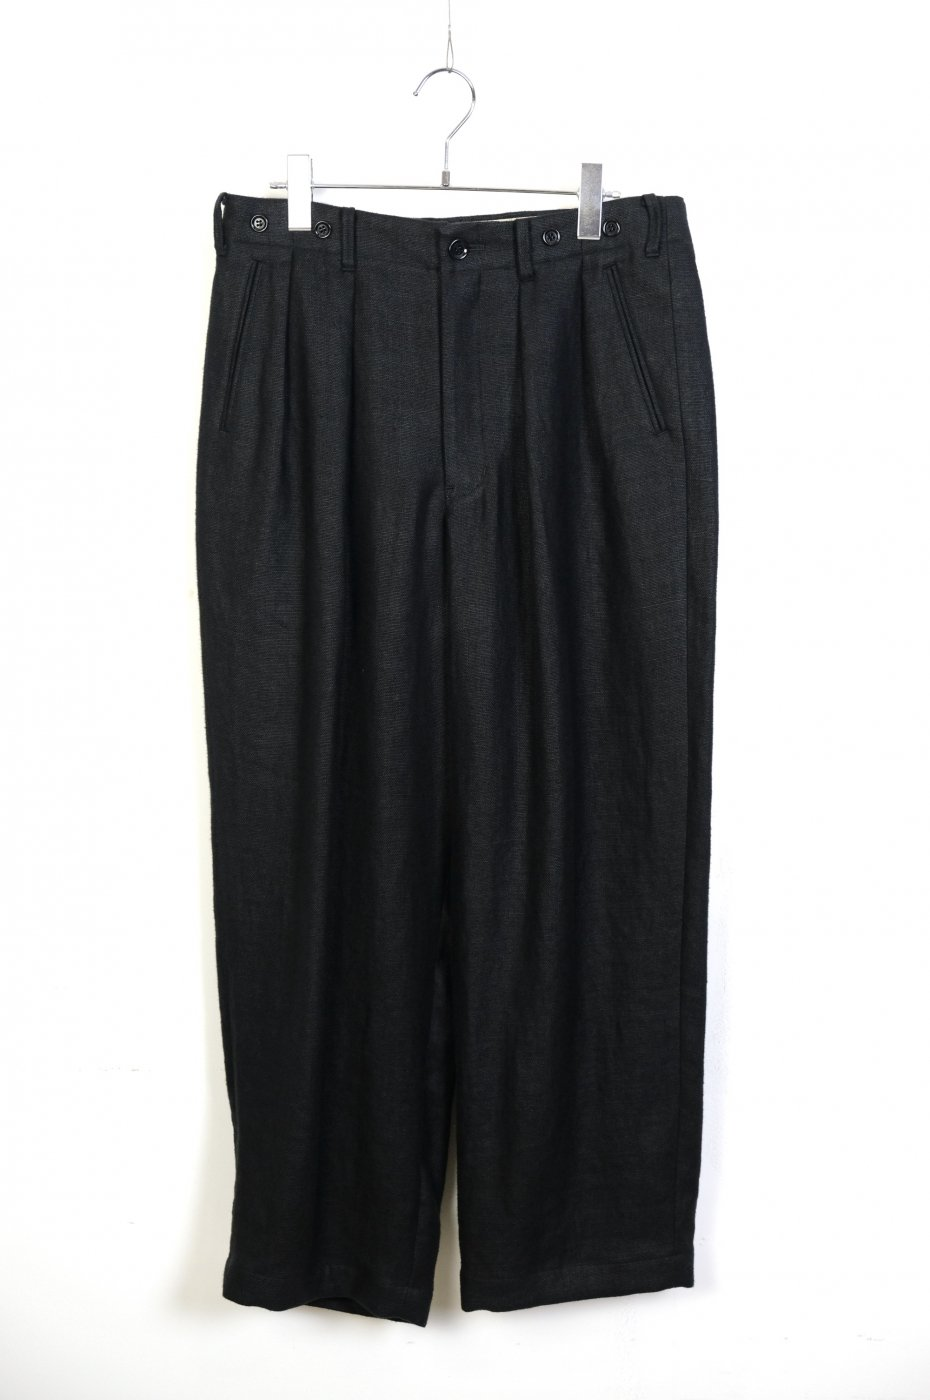 Gorsch the seamster ゴーシュザシームスター -Two Tack High Waist Trousers-